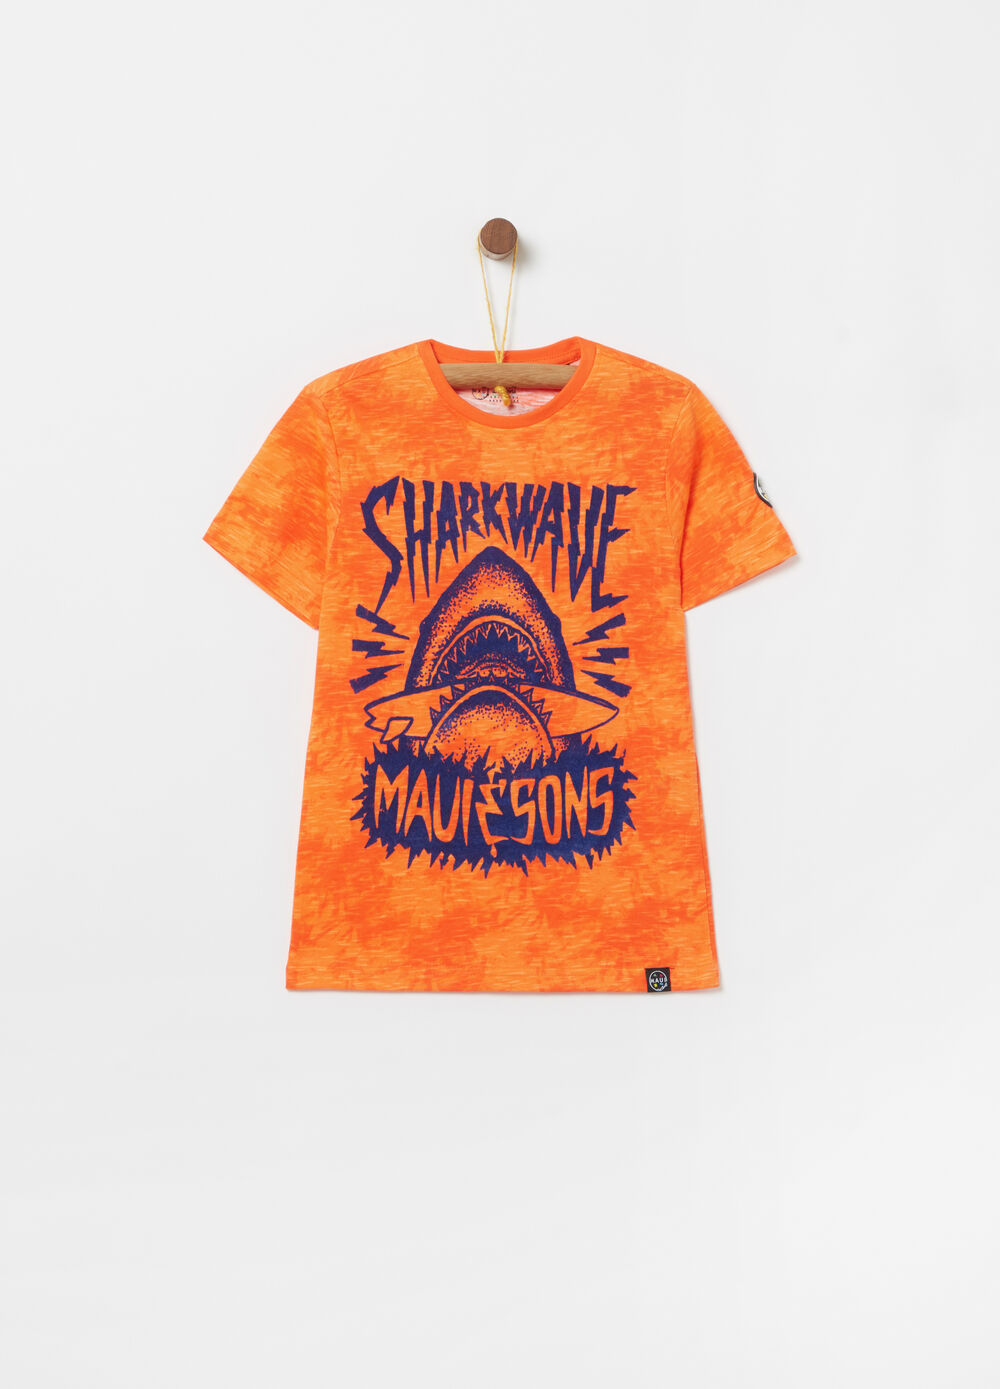 T-shirt with Maui and Sons shark print